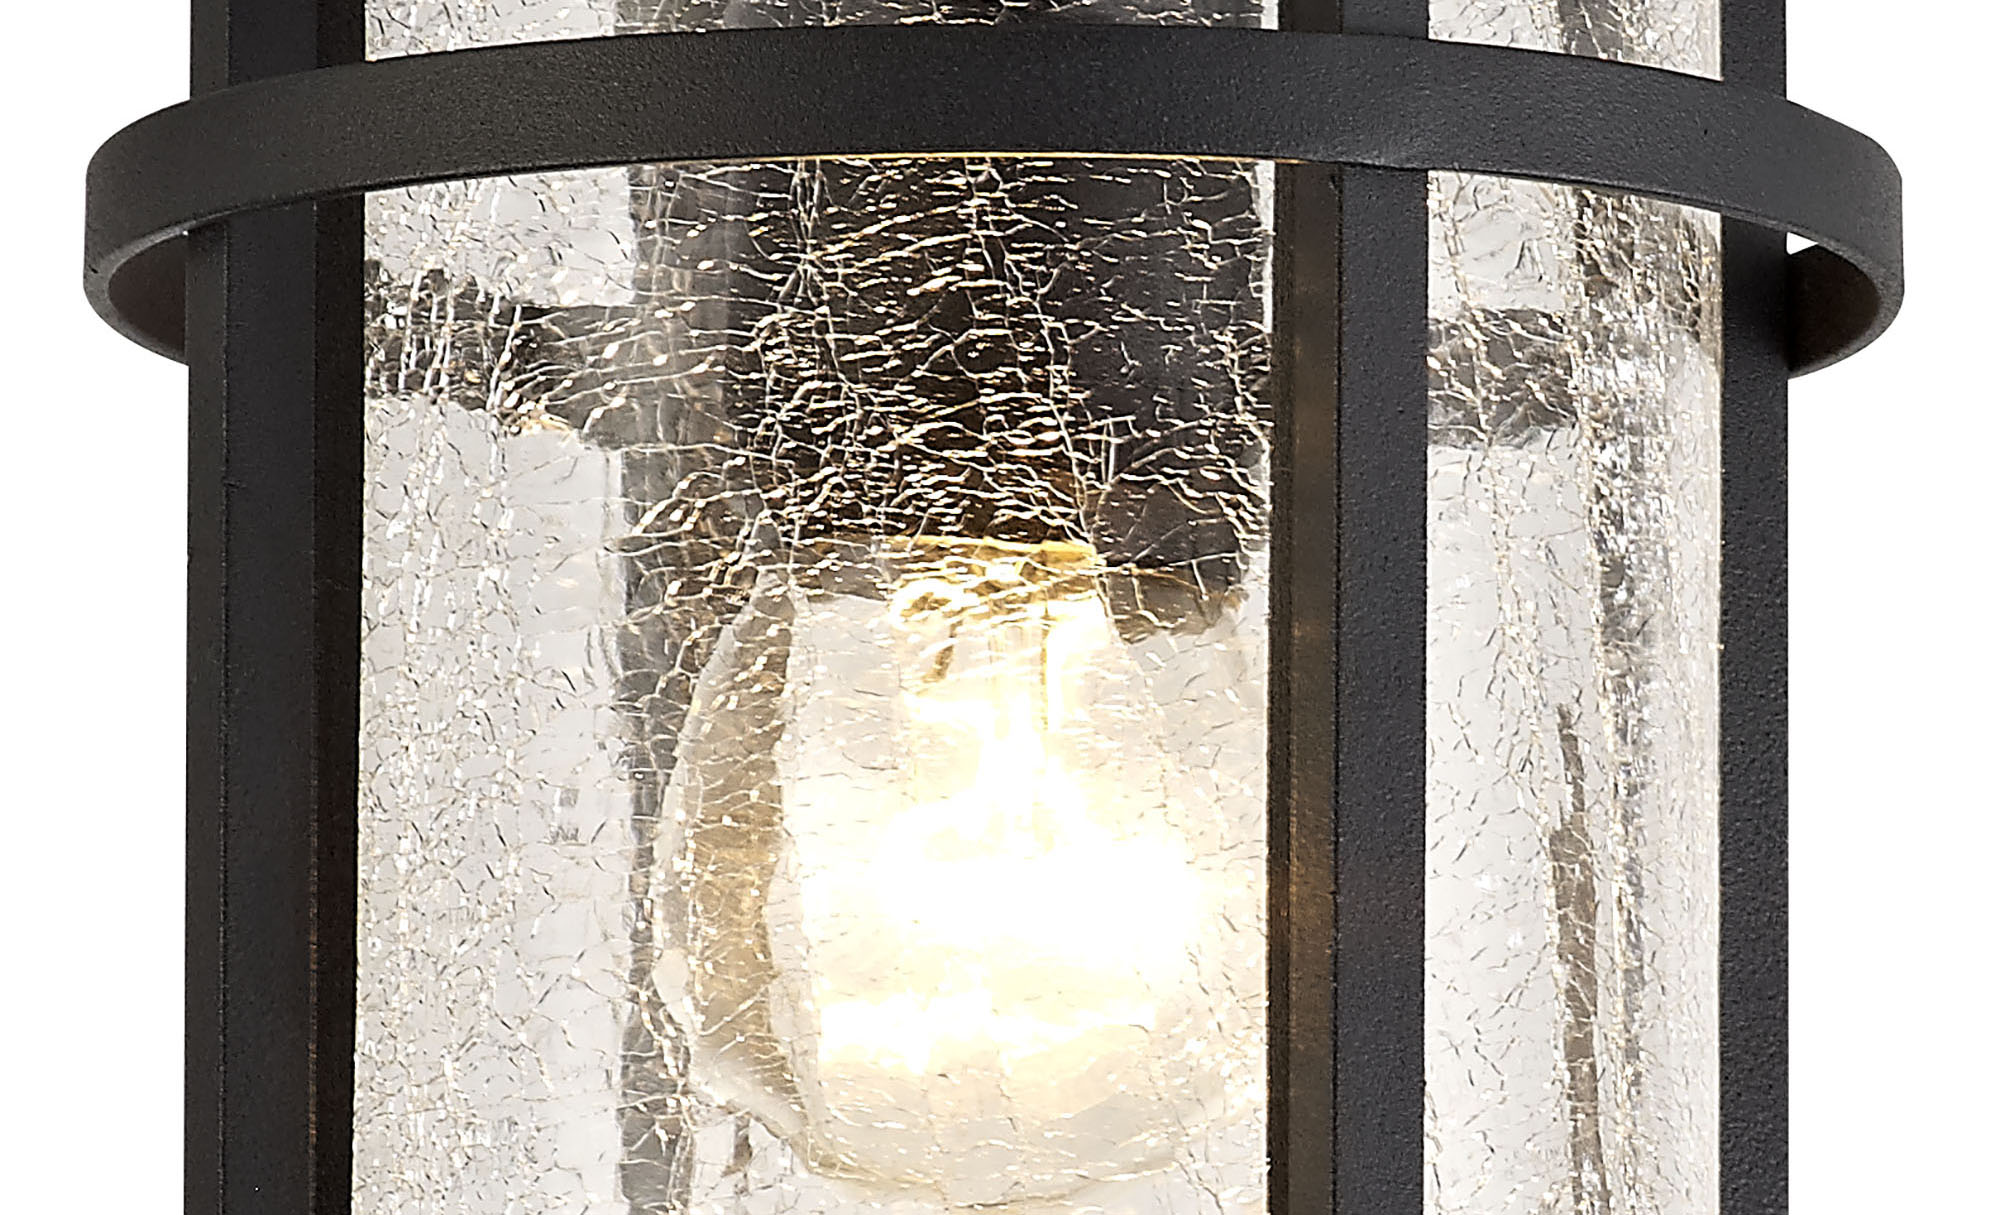 Ceiling, 1 x E27, Black/Clear Crackled Glass, IP54, 2yrs Warranty